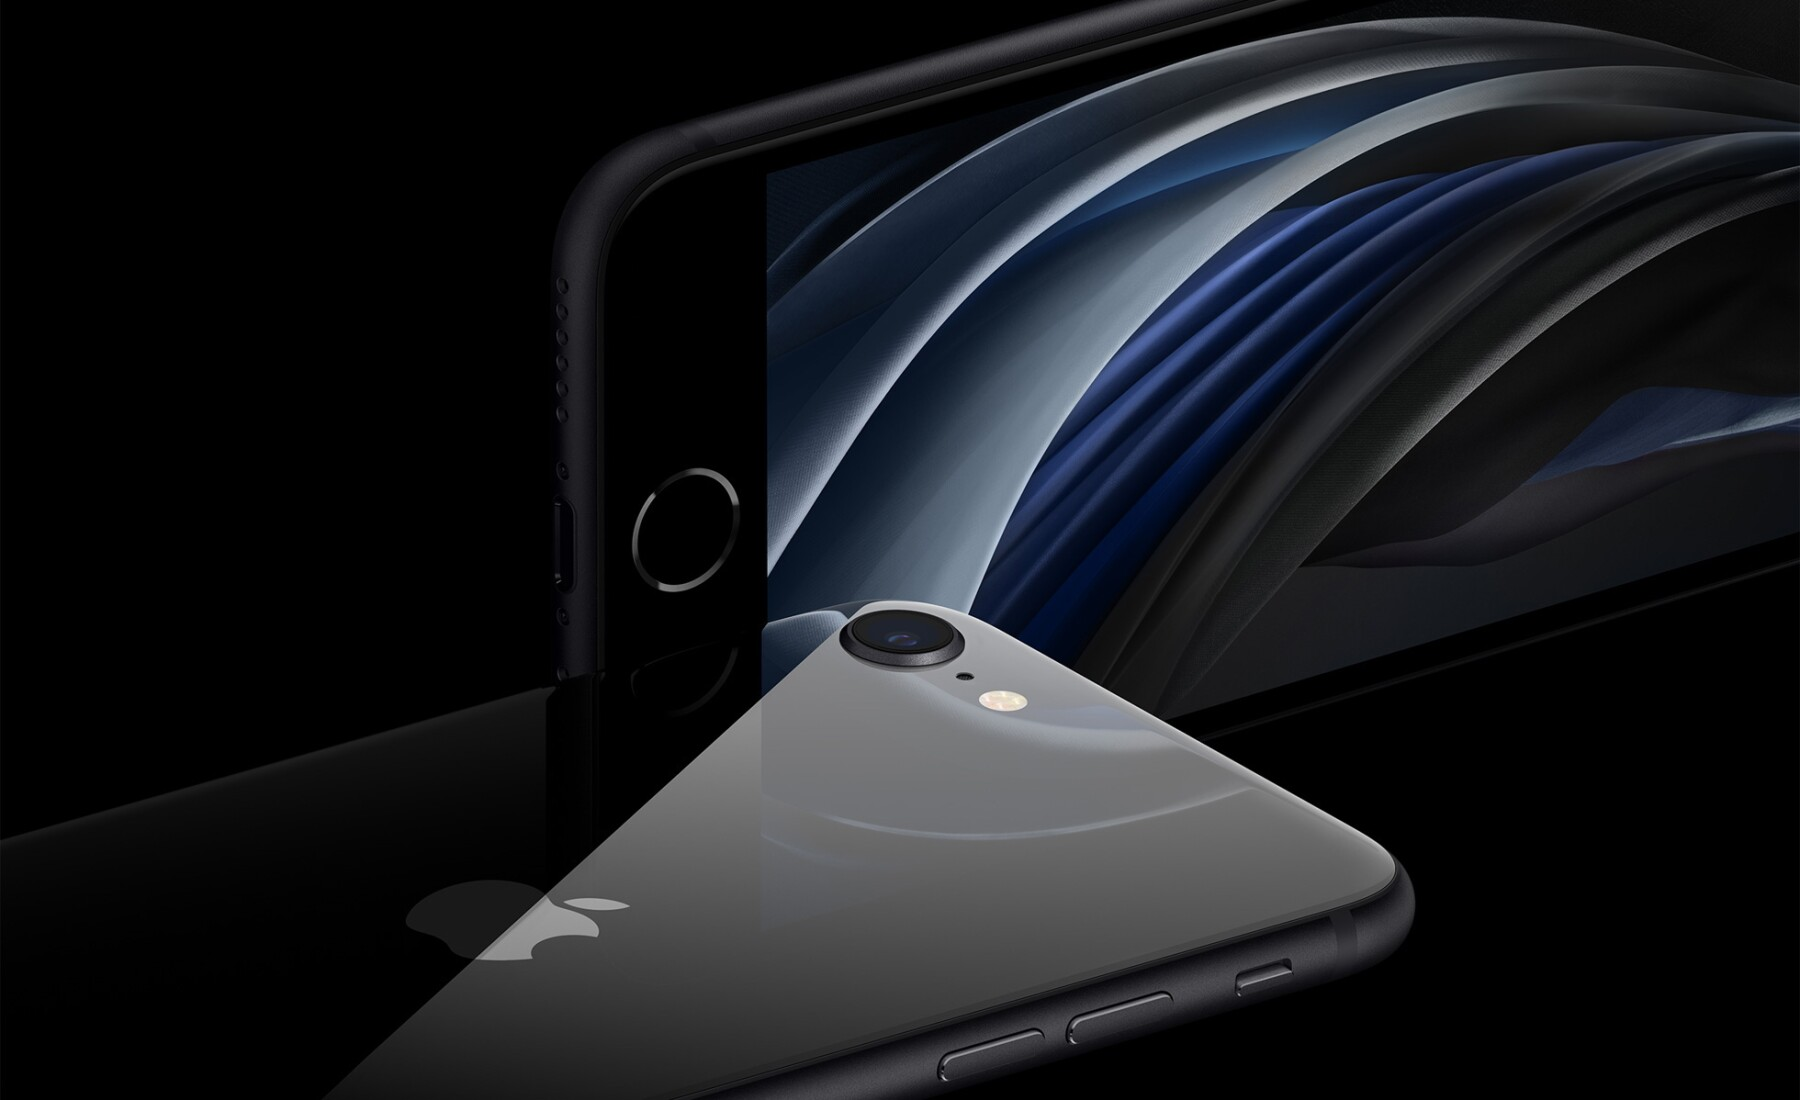 Apple_new-iphone-se-black-camera-and-touch-id_04152020.jpg